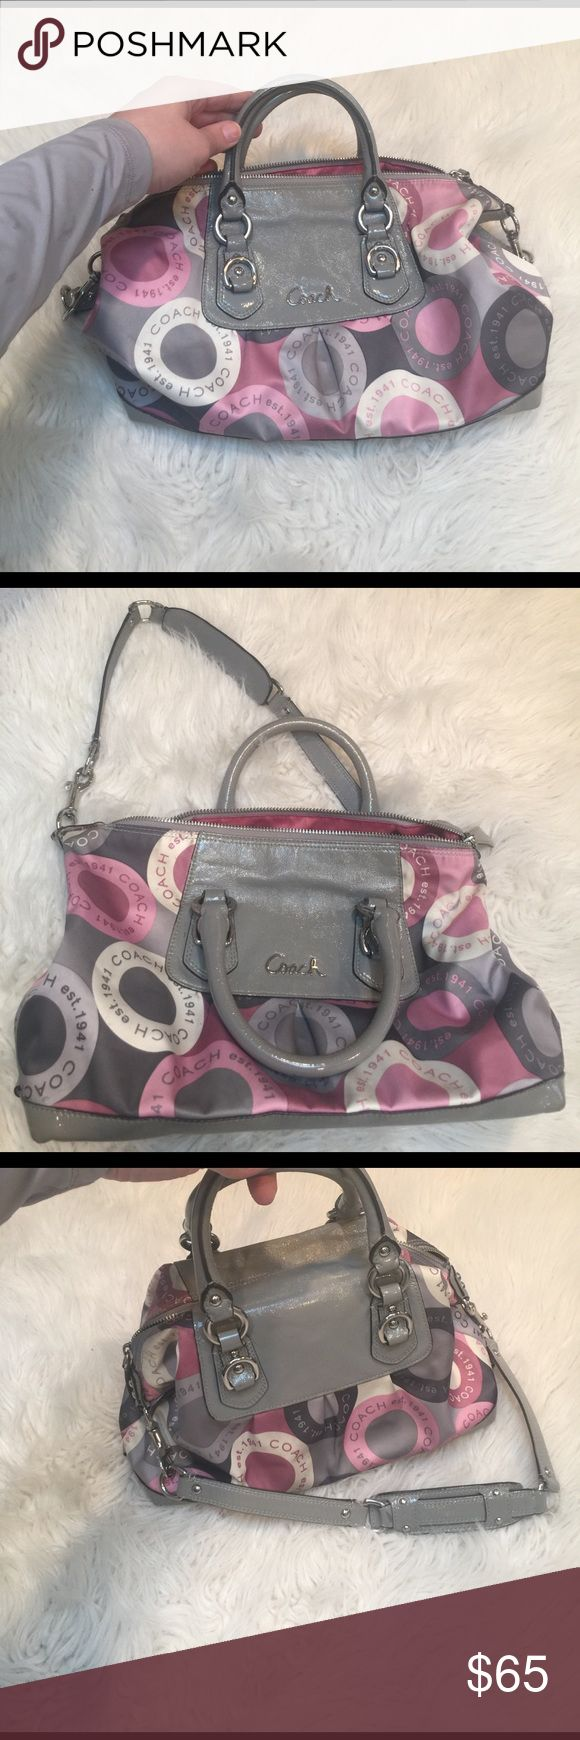 Authentic Coach purse. Gray patent leather/ satin Authentic Coach purse. Gray Patton leather with beautiful pink silk. Some wear, and pen marks. Could use a good cleaning. I don't know if her professional could remove the spots and marks. Price reflects cleaning. Coach Bags Shoulder Bags